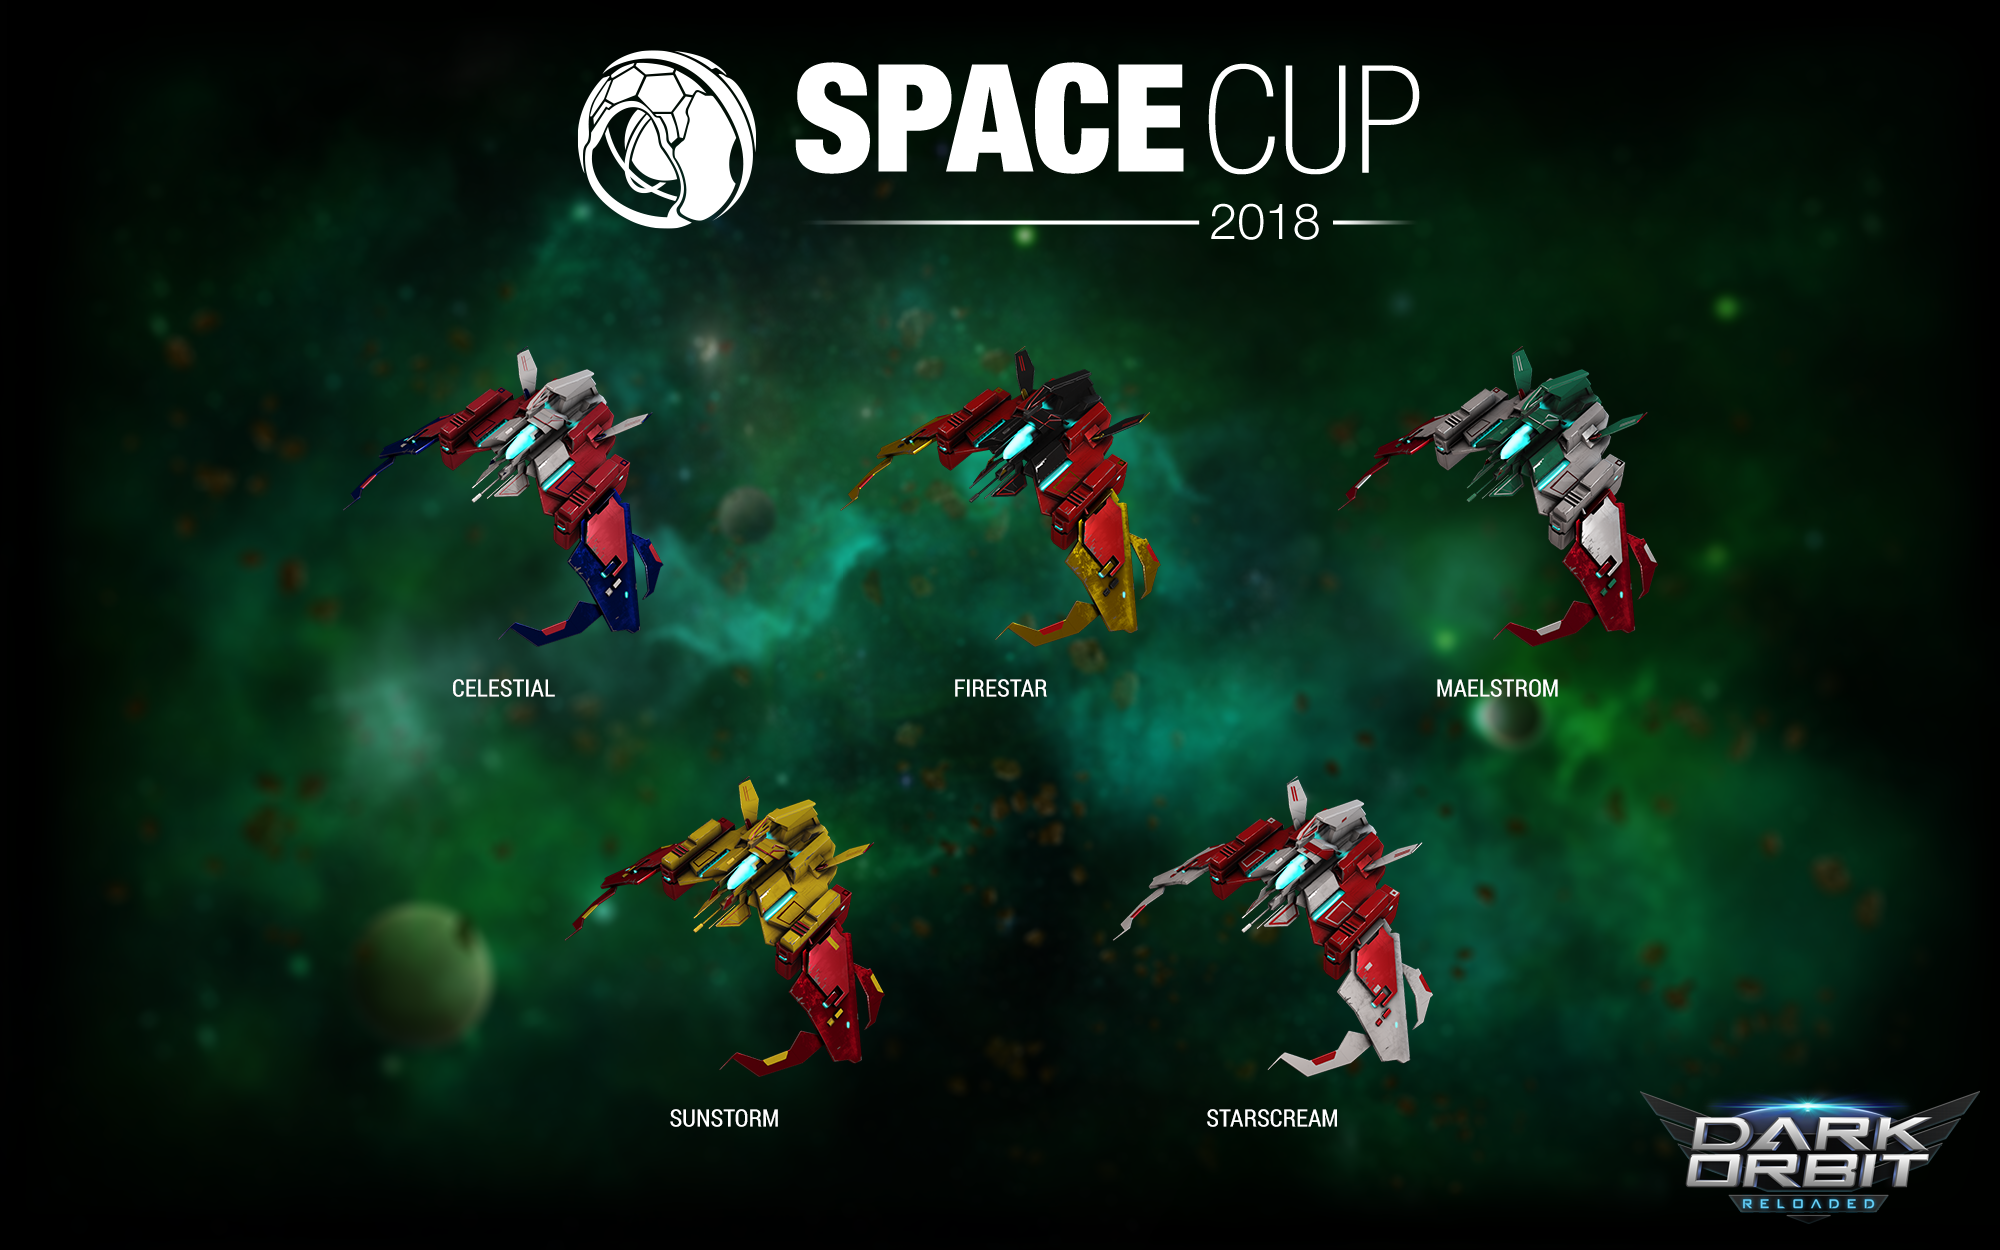 spacecup-2018_ships_2000x1250.png